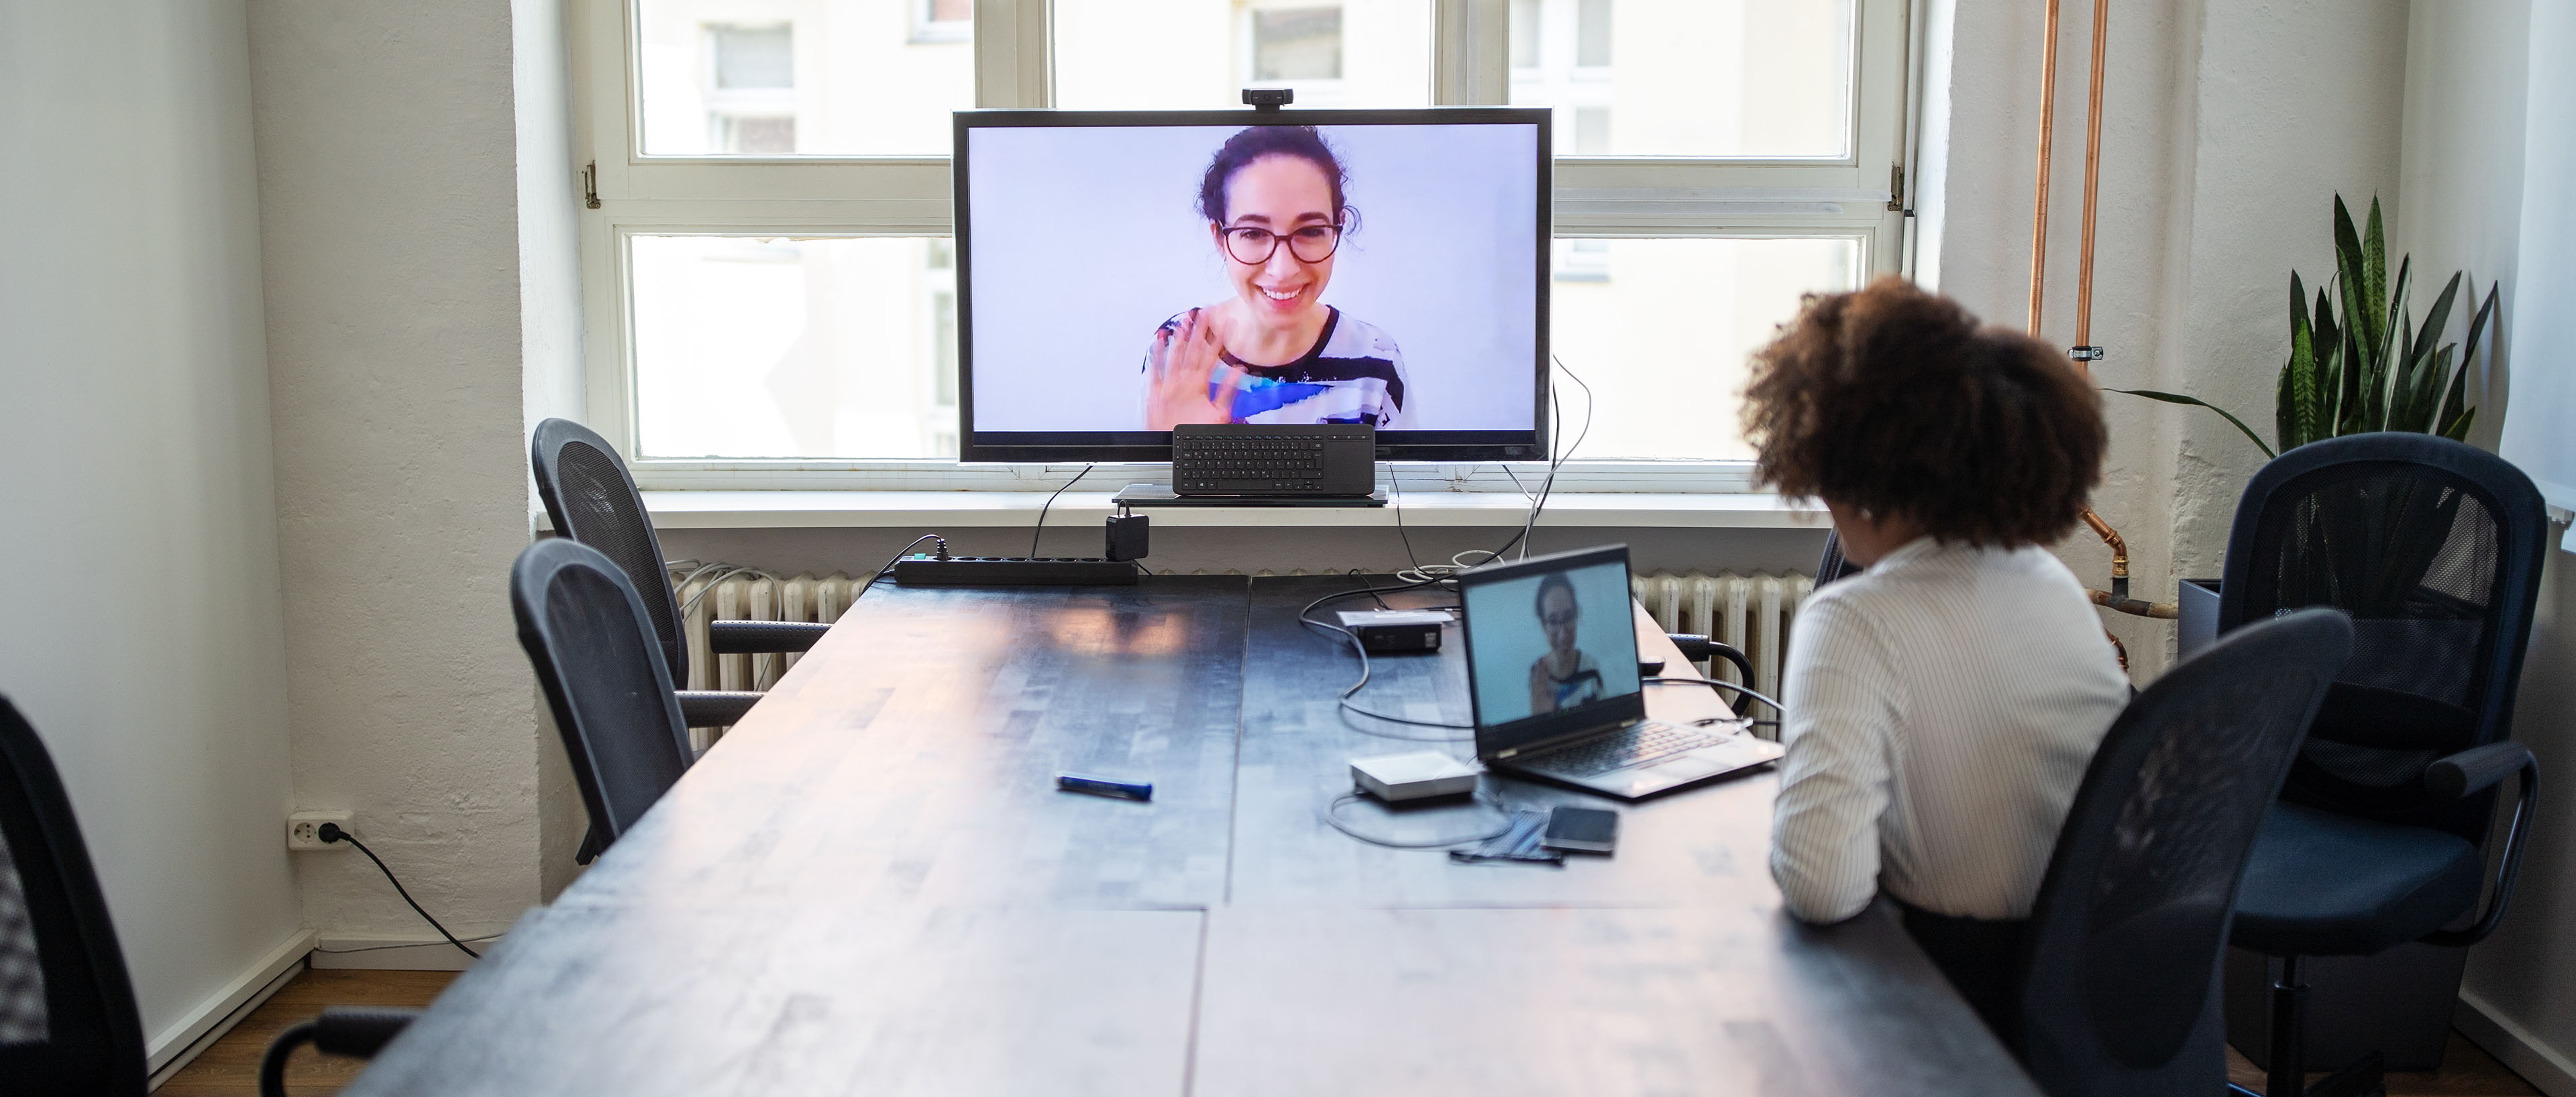 Businesswoman having a meeting with coworkers over a video call